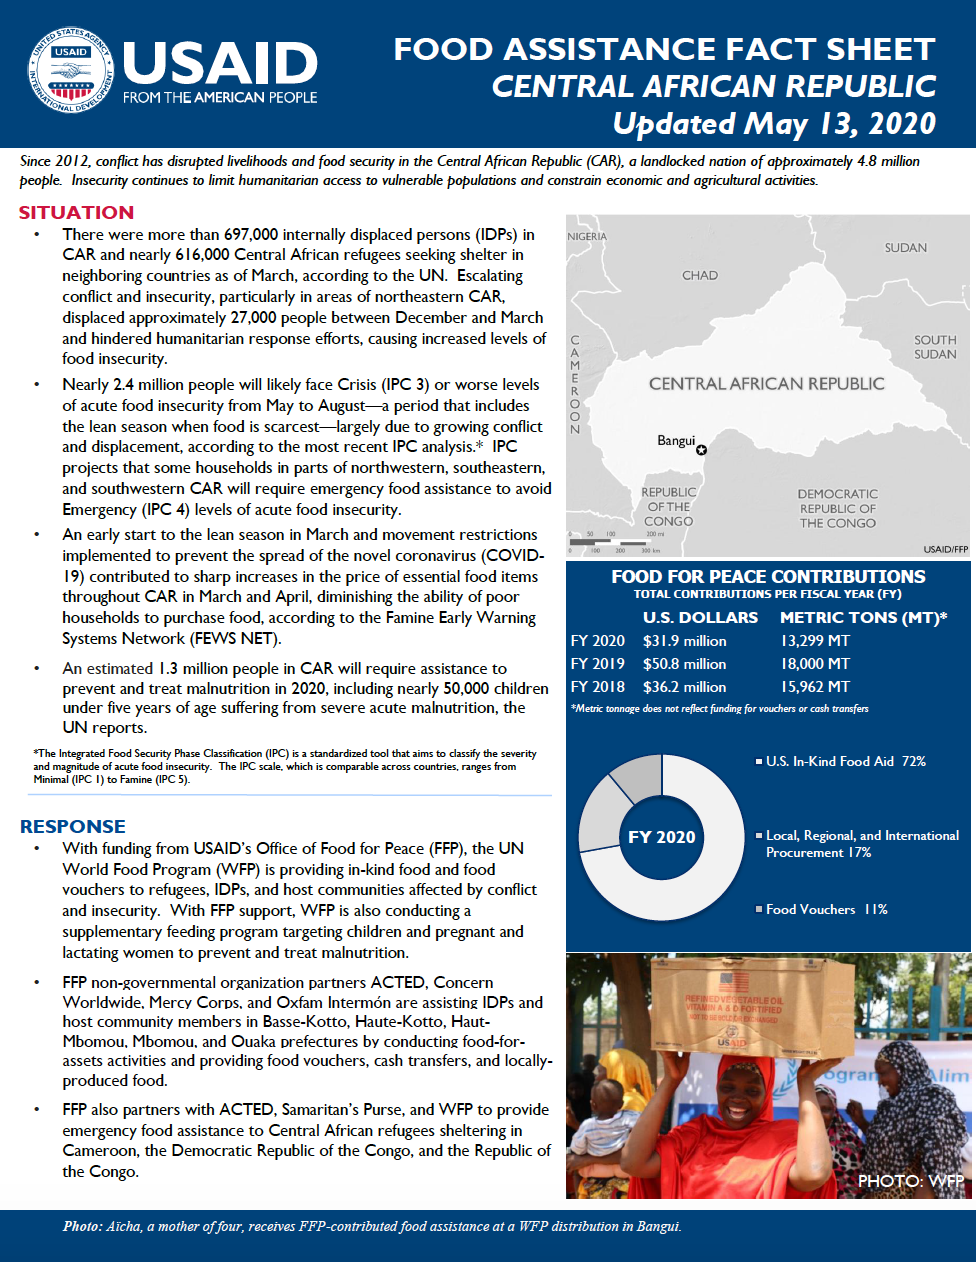 Food Assistance Fact Sheet - Central African Republic